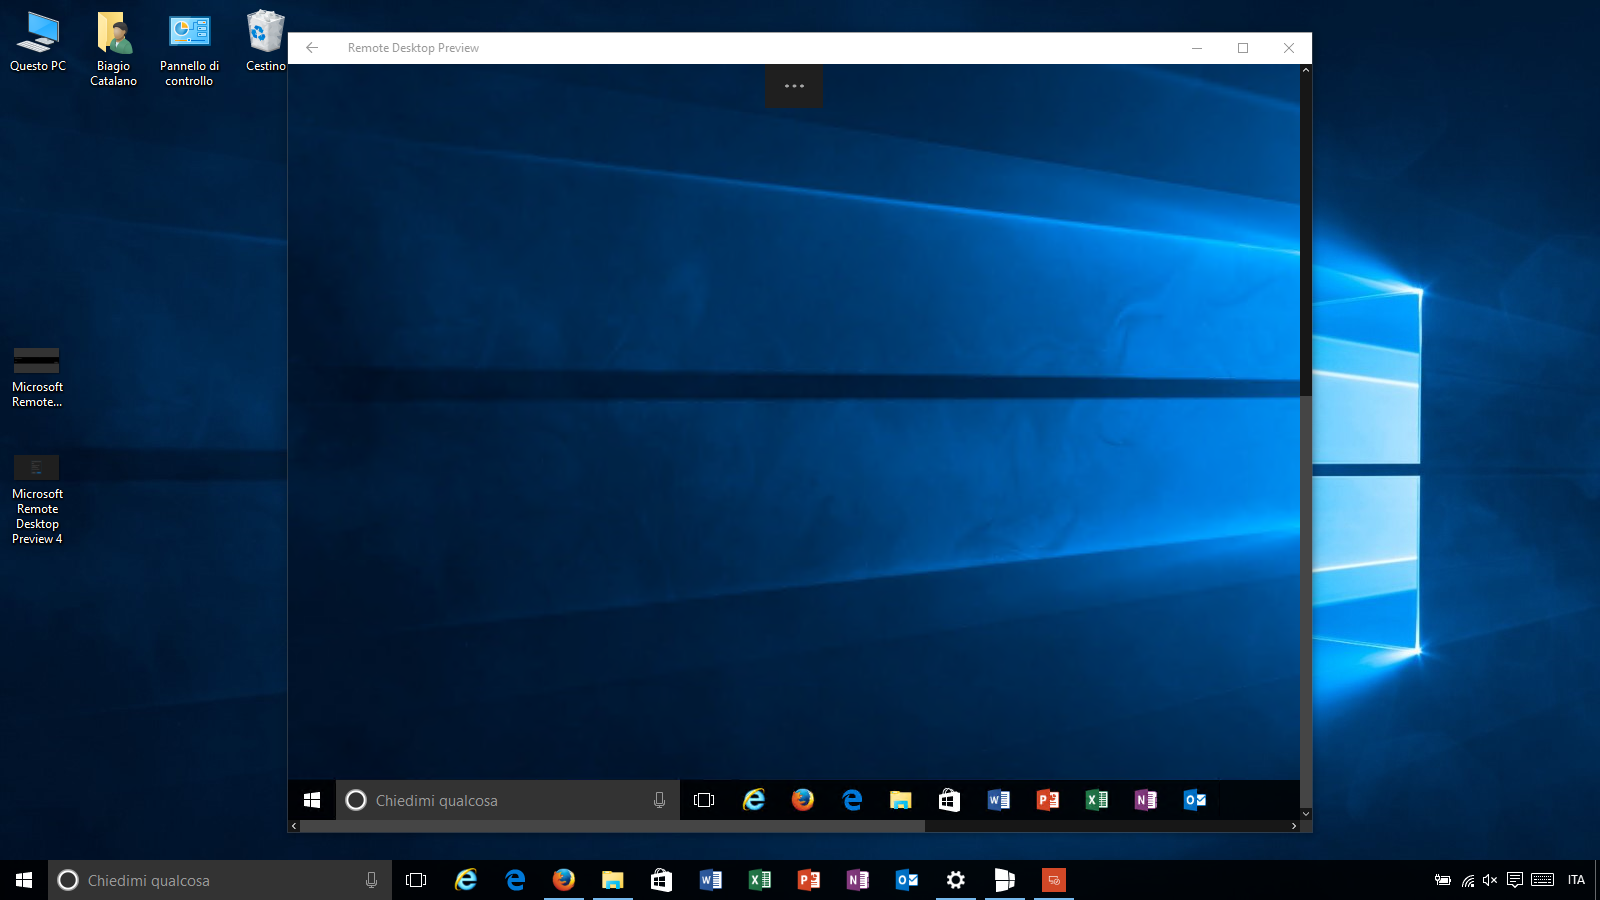 Guida all 39 uso di remote desktop per windows 10 e windows for Window remote desktop